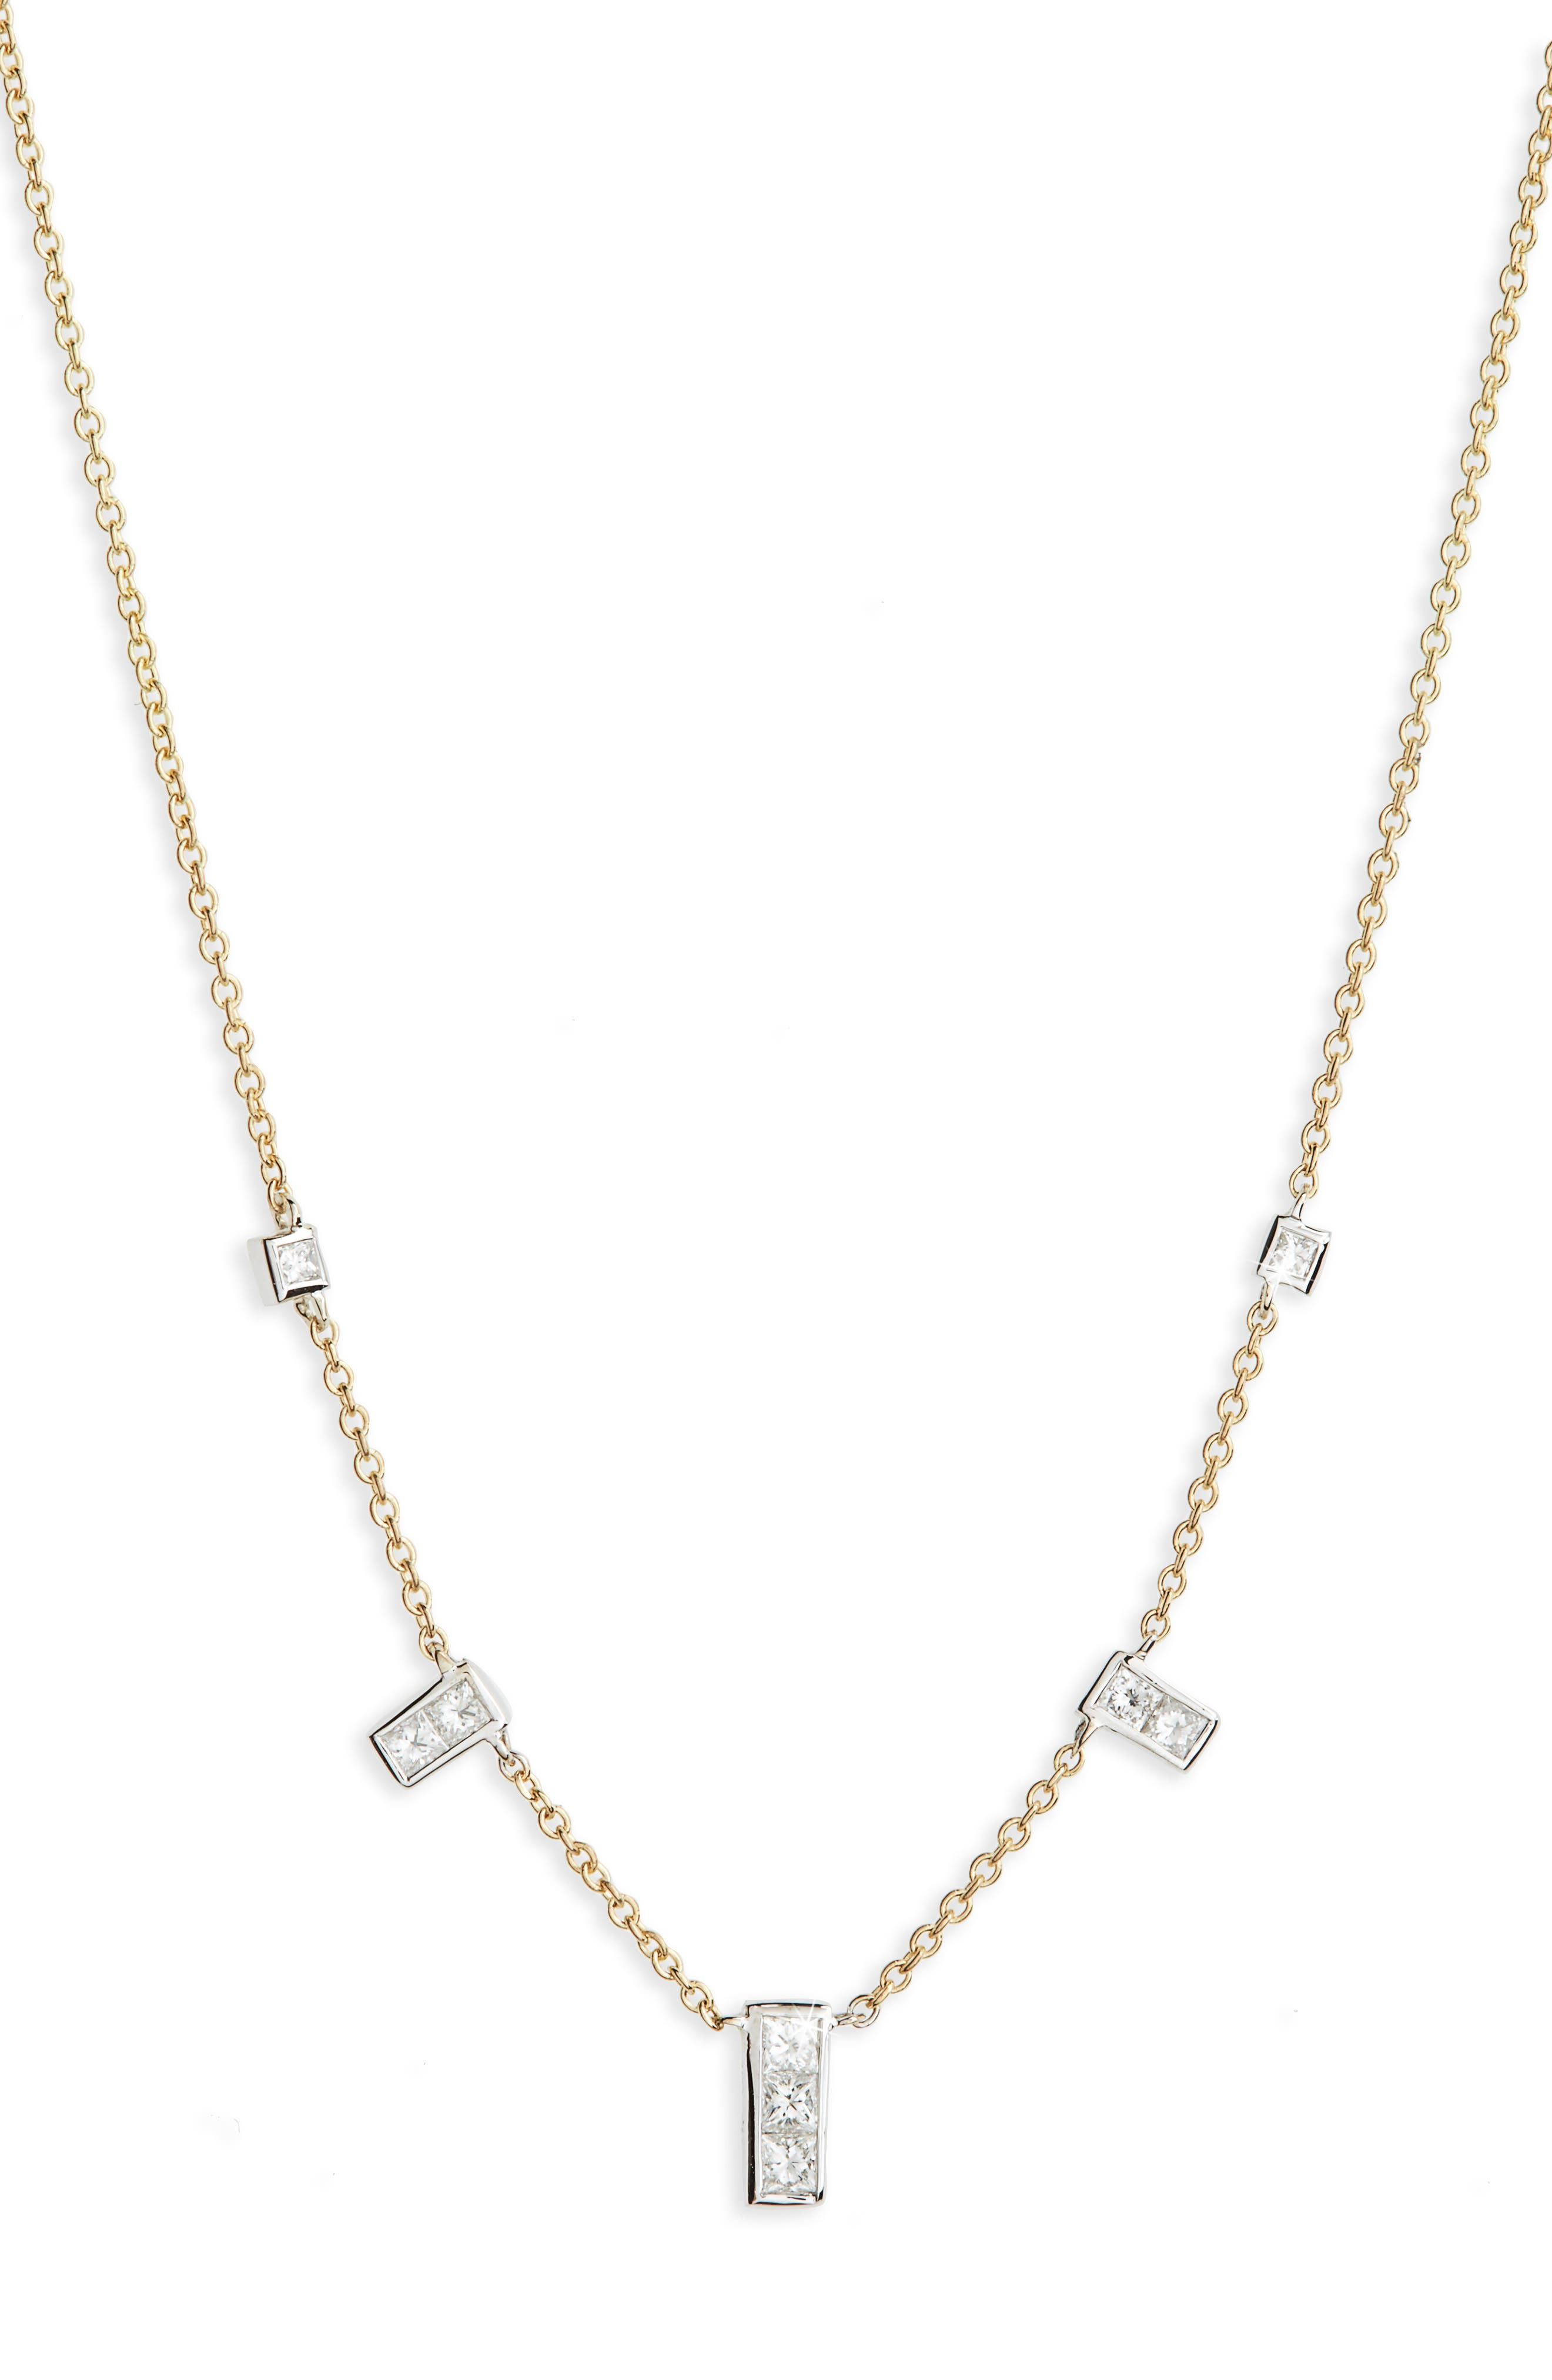 Diamond Rectangle Dangle Station Necklace,                             Main thumbnail 1, color,                             Yellow Gold/ White Gold